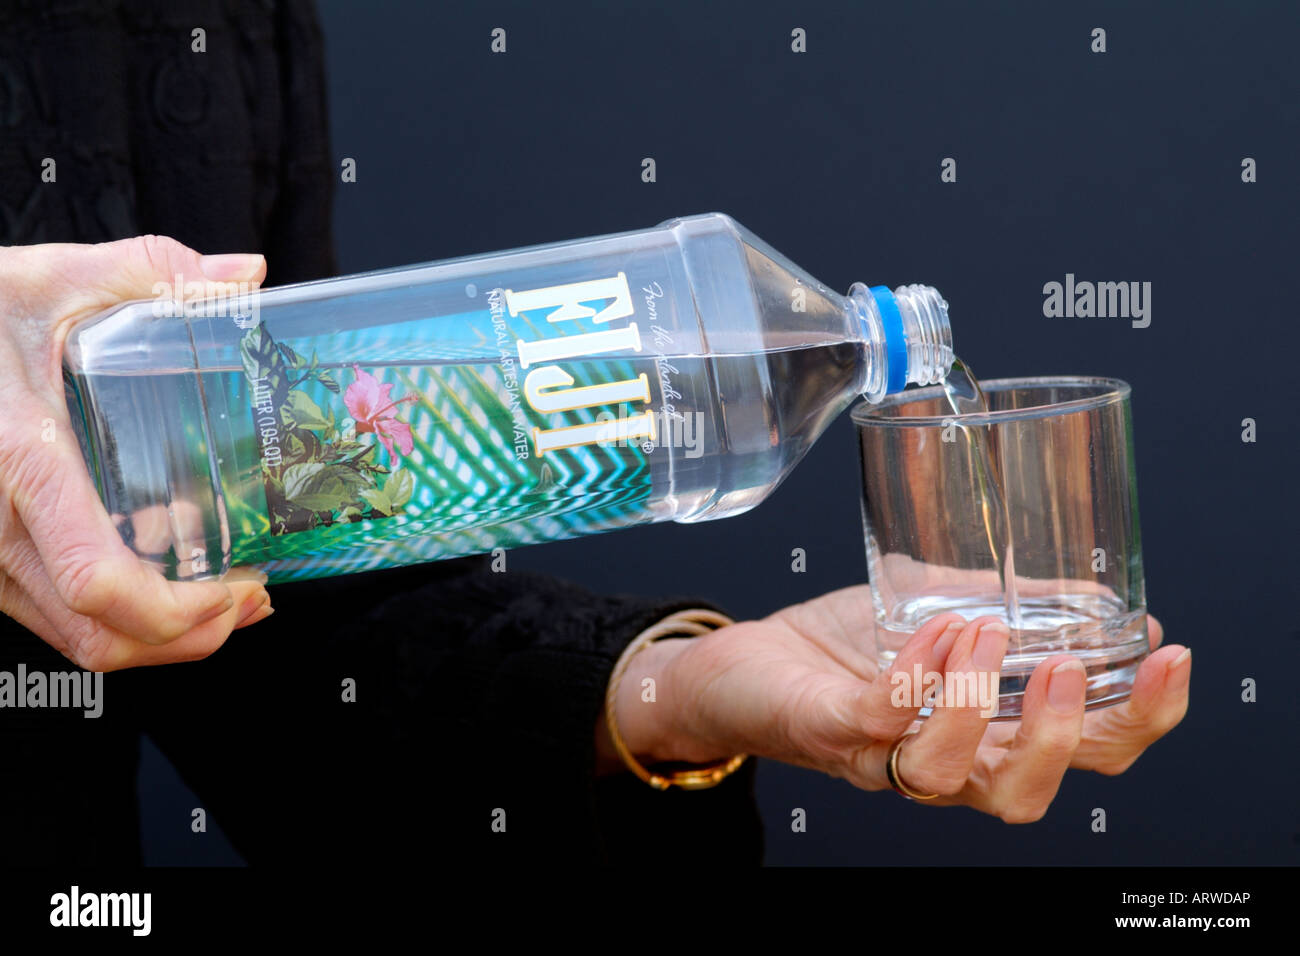 Fiji Bottled Water Being Poured Into A Glass Expensive